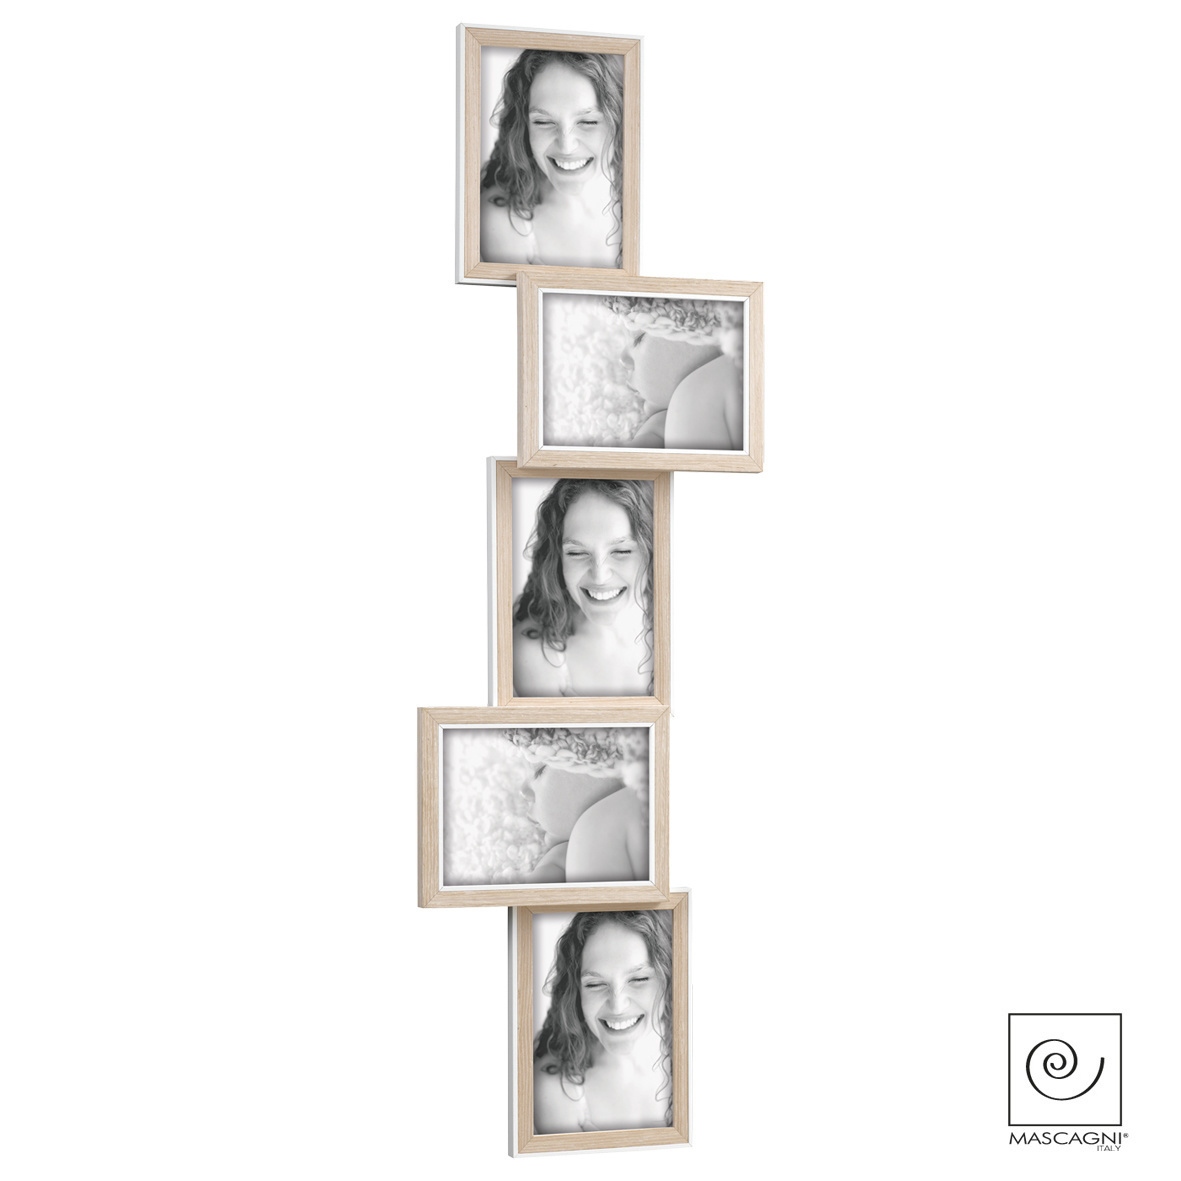 Art Mascagni A606 MULTIPLE FRAME